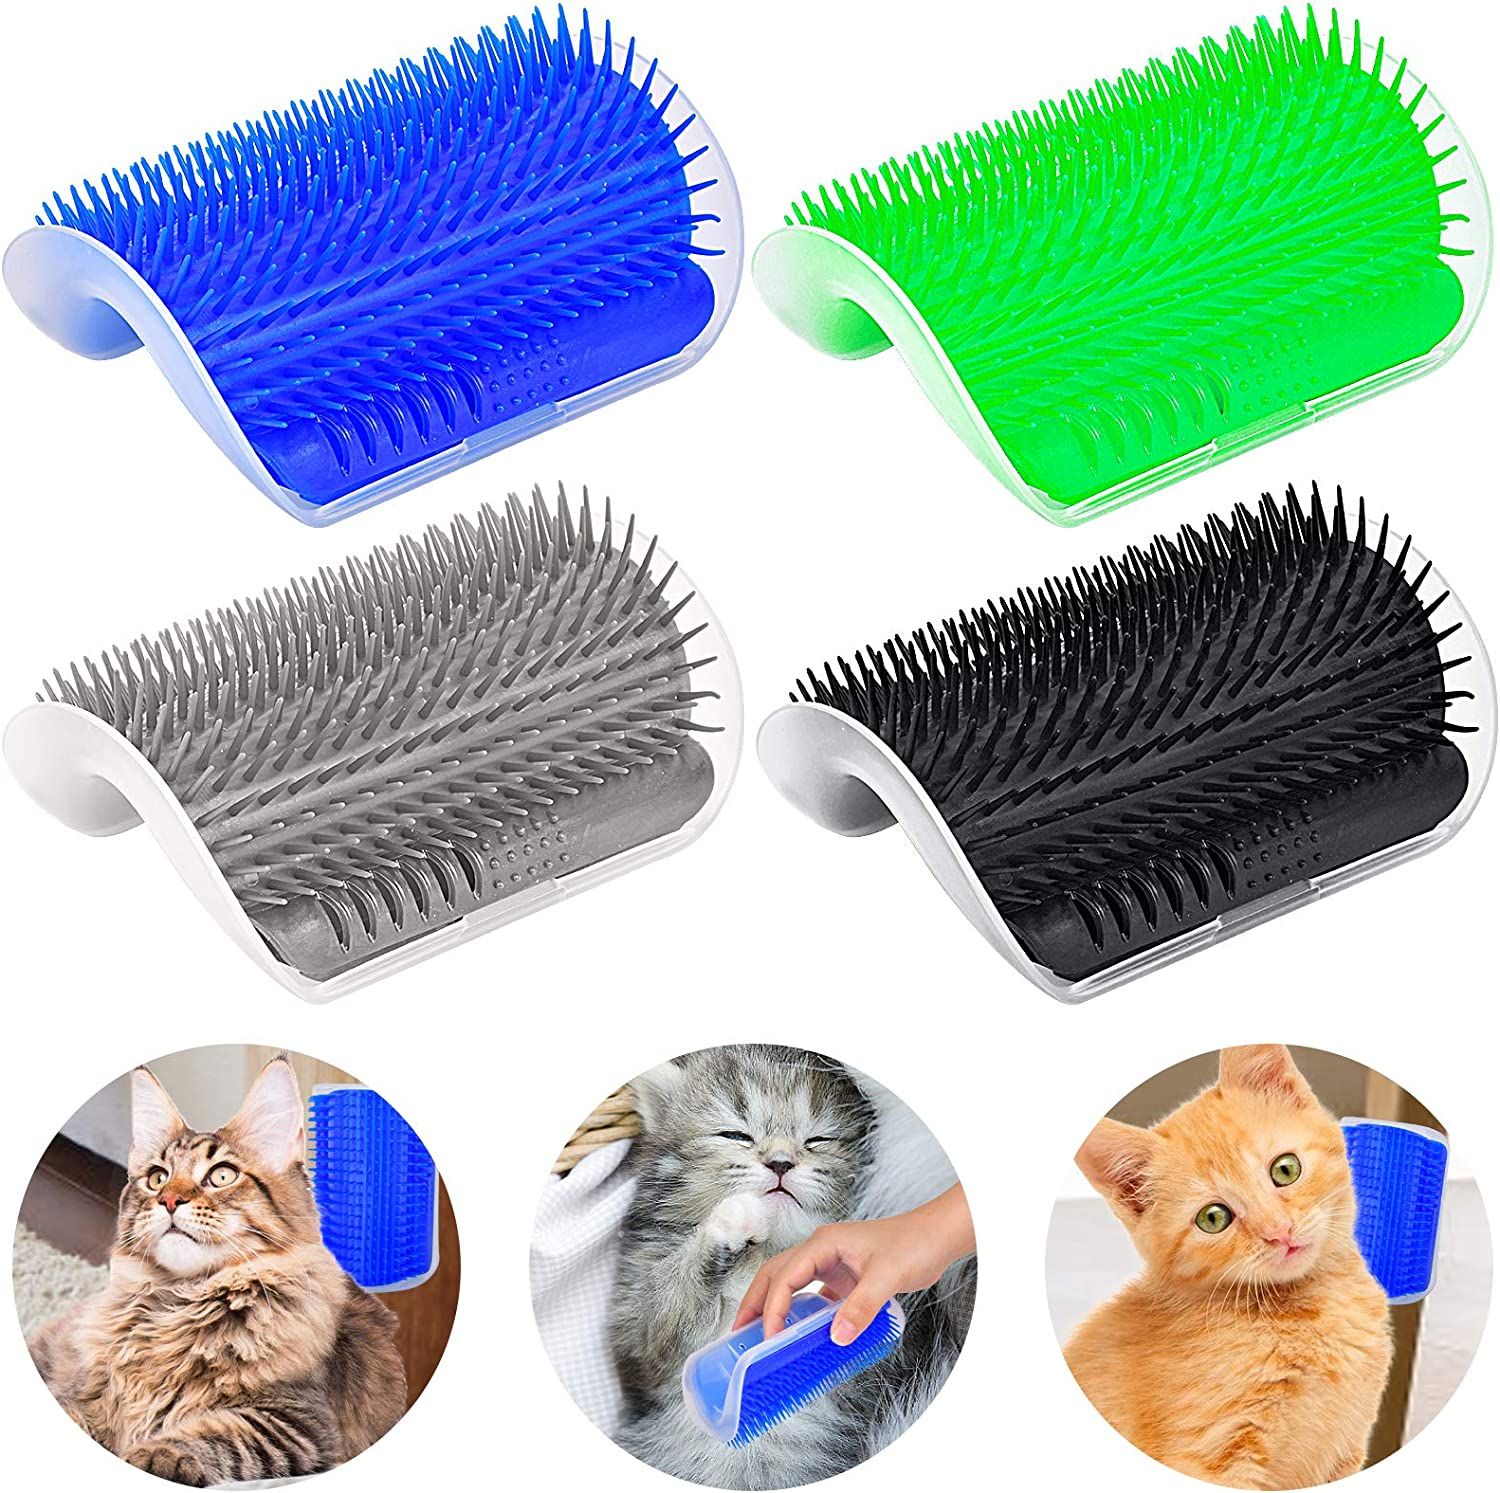 Cat Self Groomer, Cat Brushes 4PACK Cat Slicker Brush Upgraded Cats Grooming Brush Tool All-In-One, Wall Corner Scratcher Trimmer Massage Combs Softer Toy for Pet Short Long Fur Cats Dogs Kitten Puppy